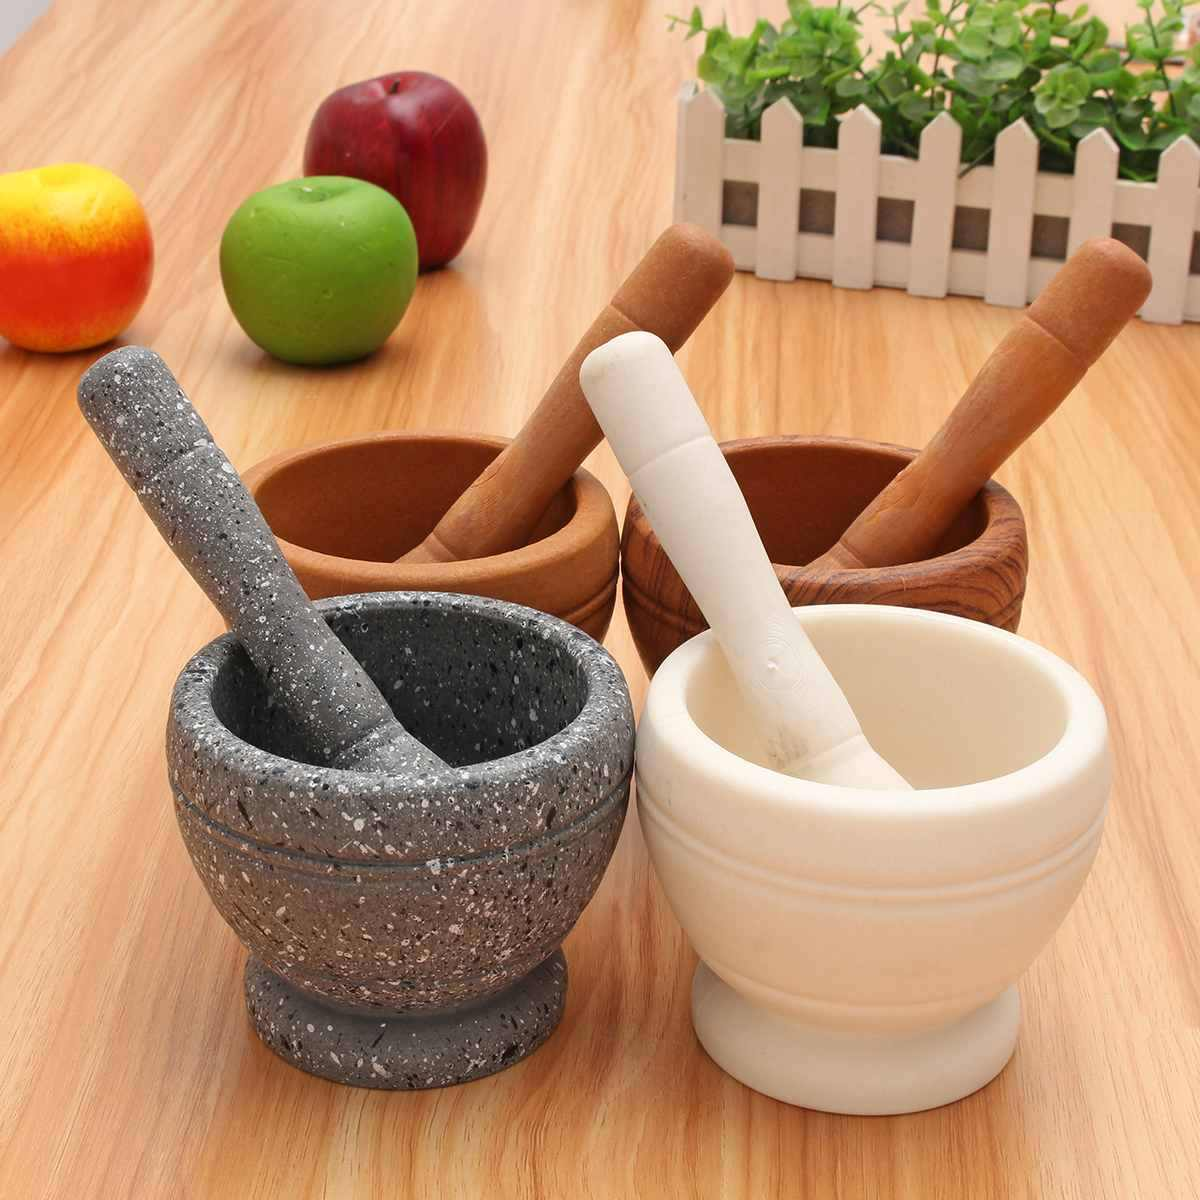 Mortar Pestle Spice Crusher Resin Bowl  Spice Pepper Crusher Herbs Grinder Garlic Mixing Bowl Press Bowl Kitchen Tools